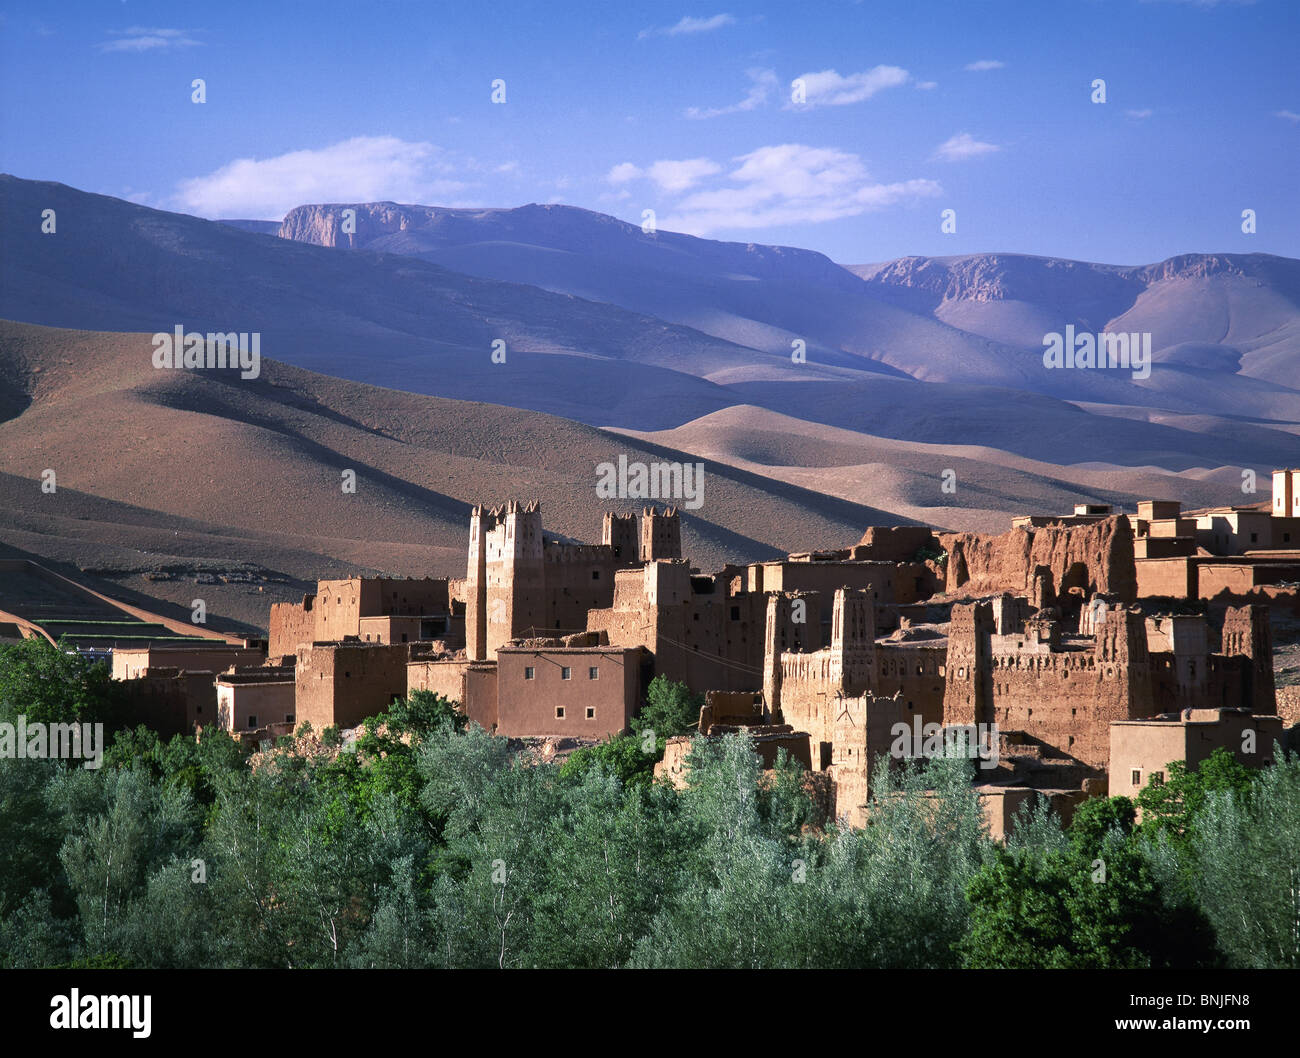 Morocco February 2007 Kasbah at Dades valley Atlas Mountains landscape city old town - Stock Image